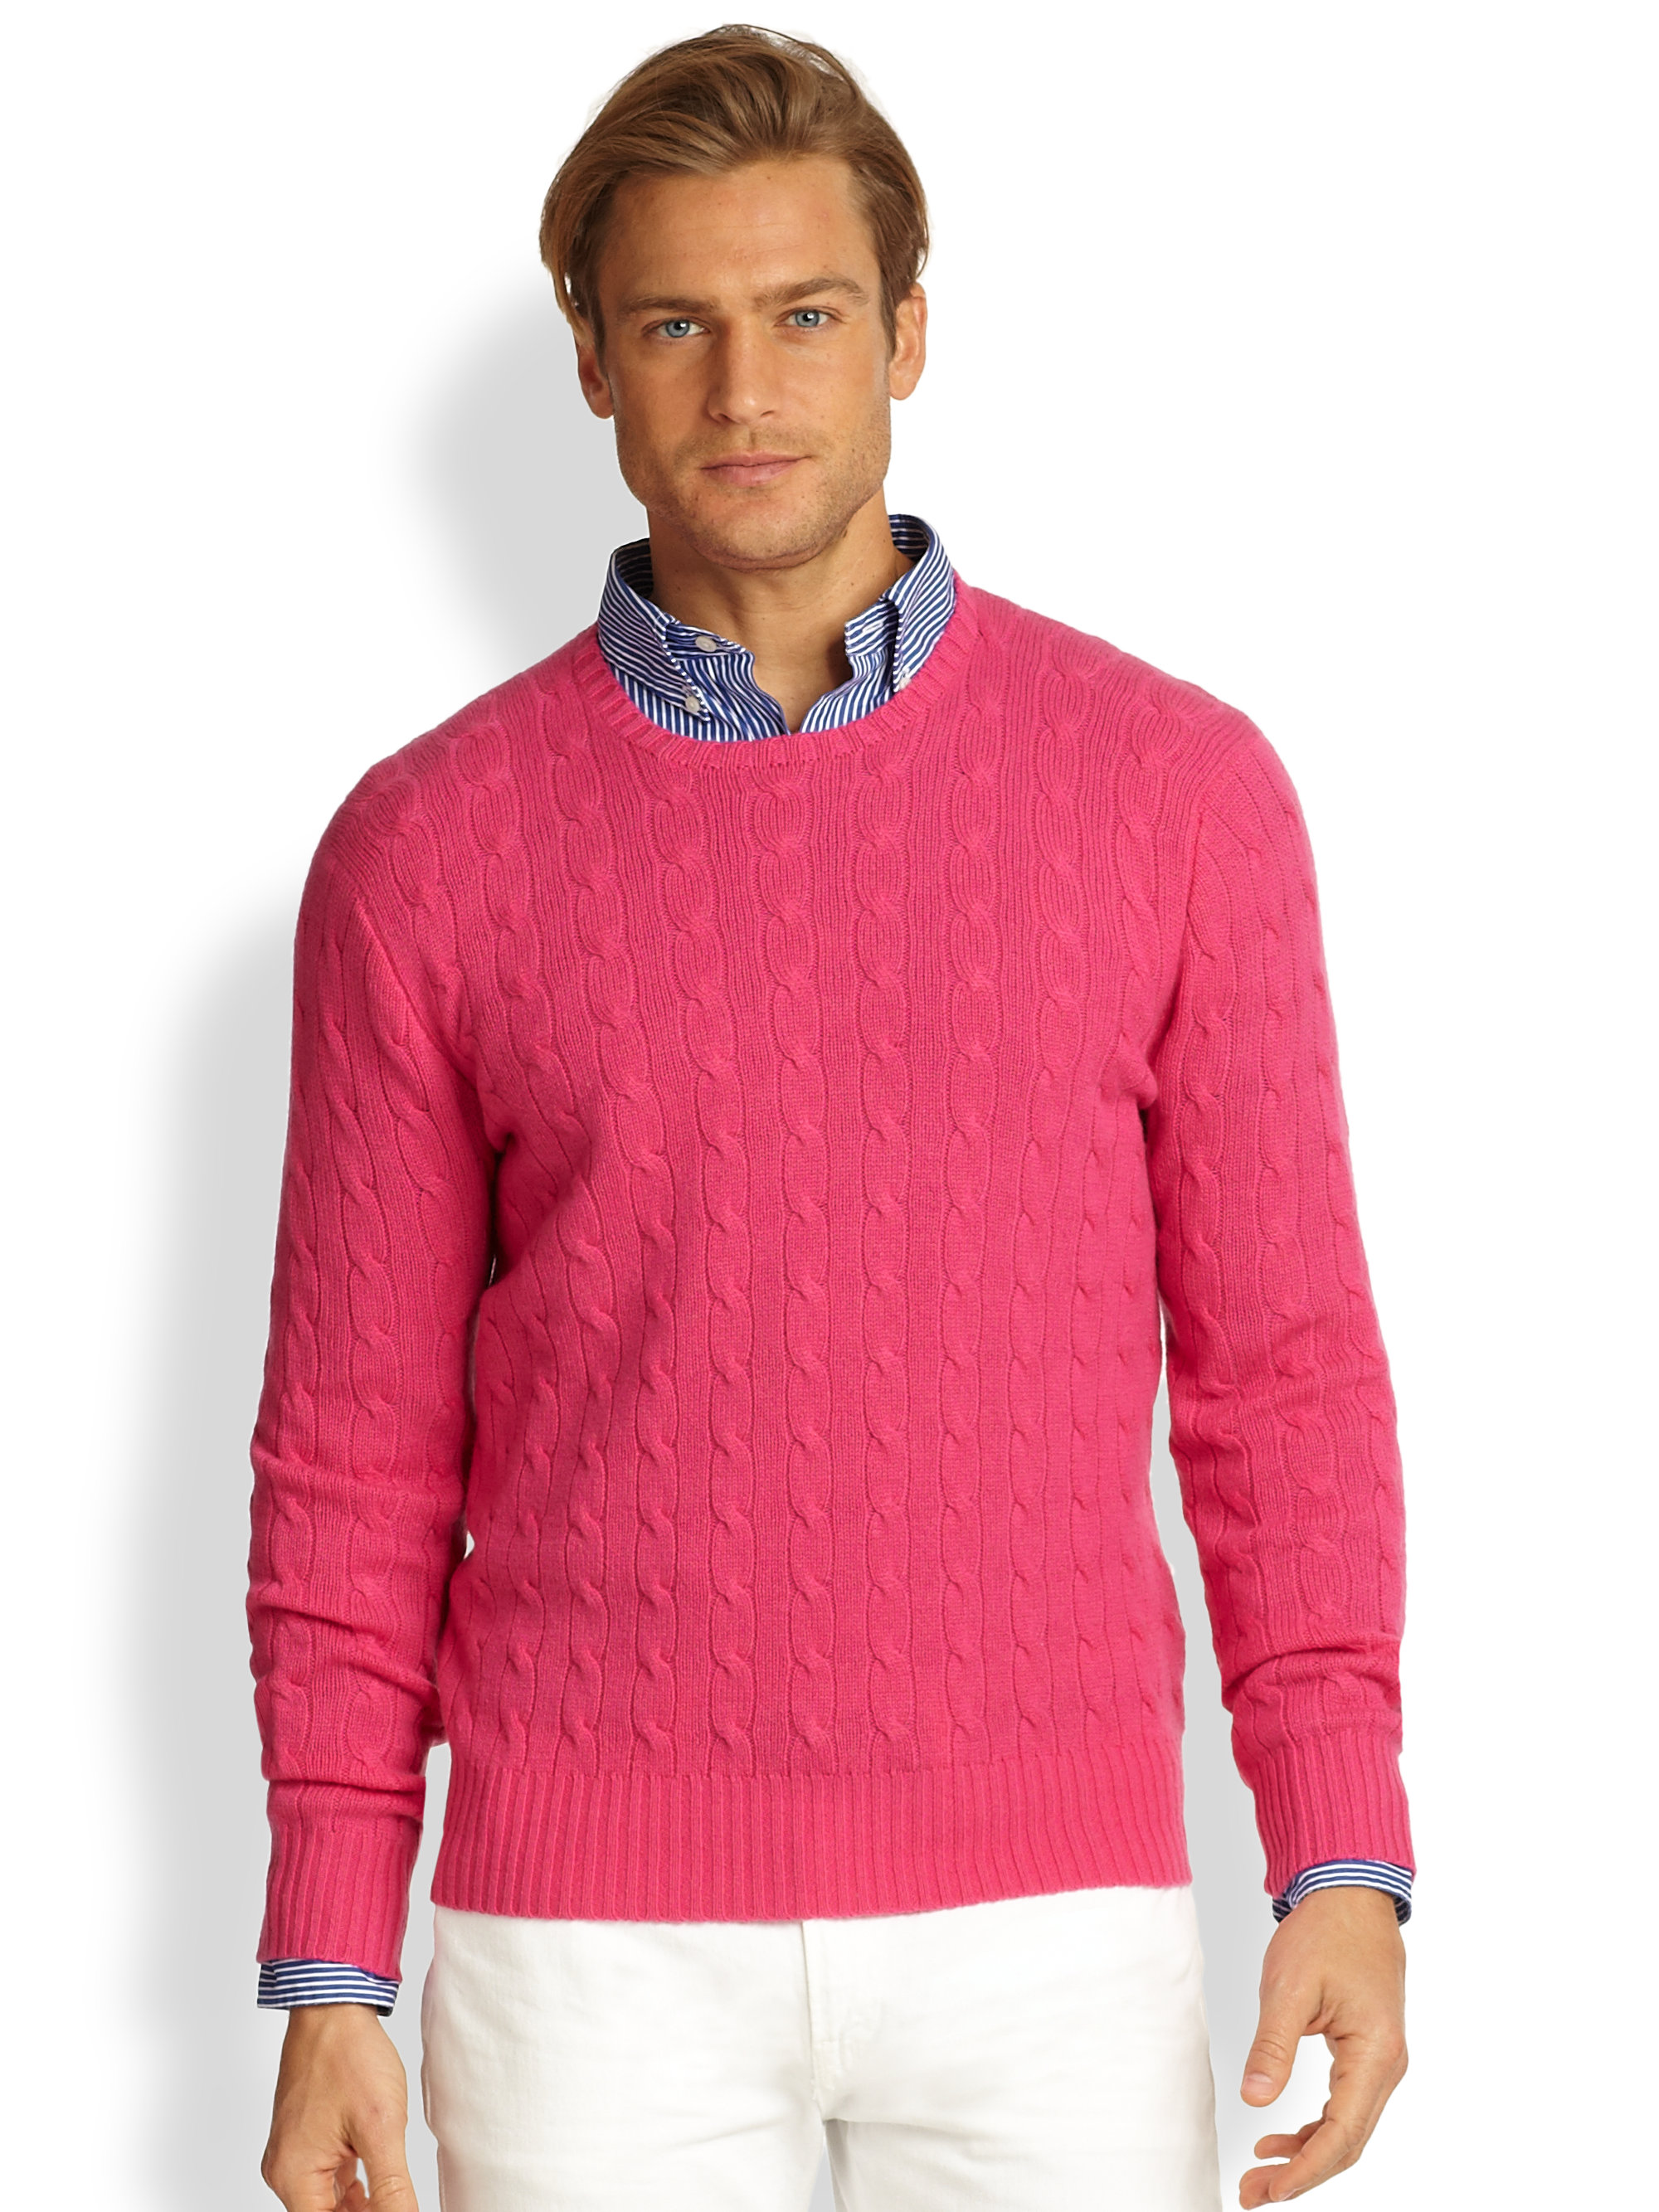 Polo Ralph Lauren Cableknit Cashmere Sweater In Ultra Pink